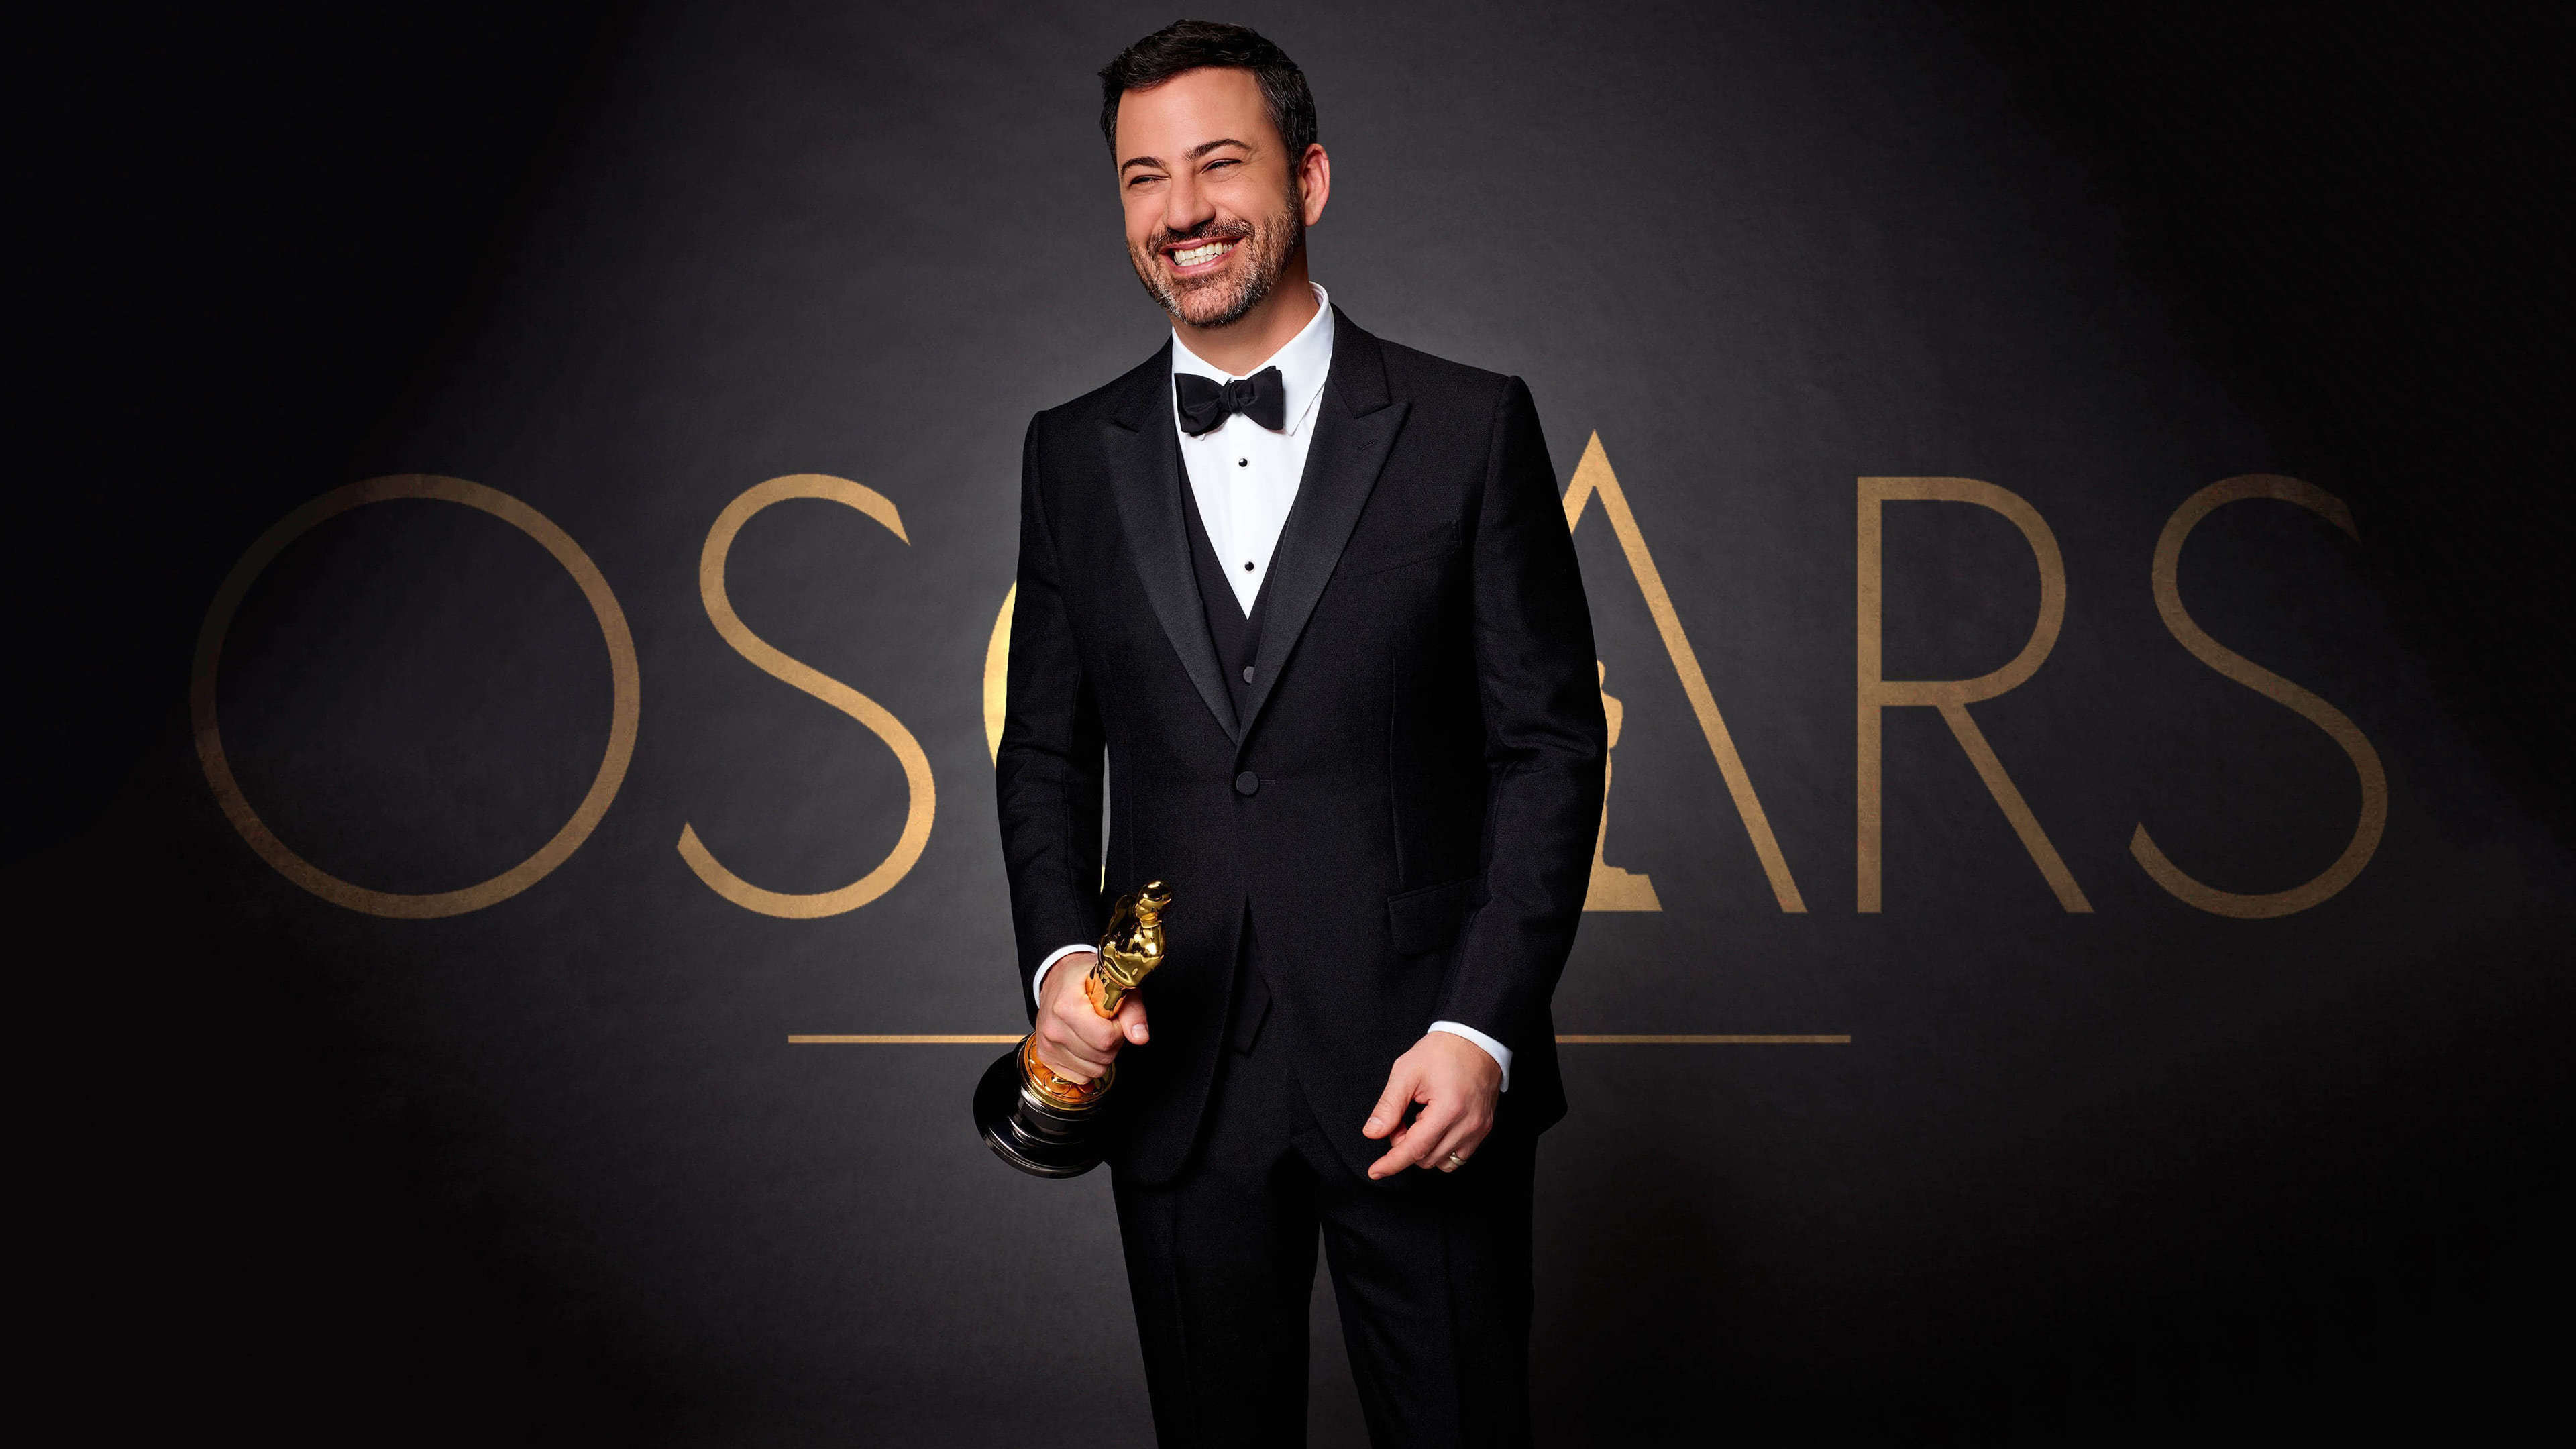 jimmy kimmel oscars uhd 4k wallpaper